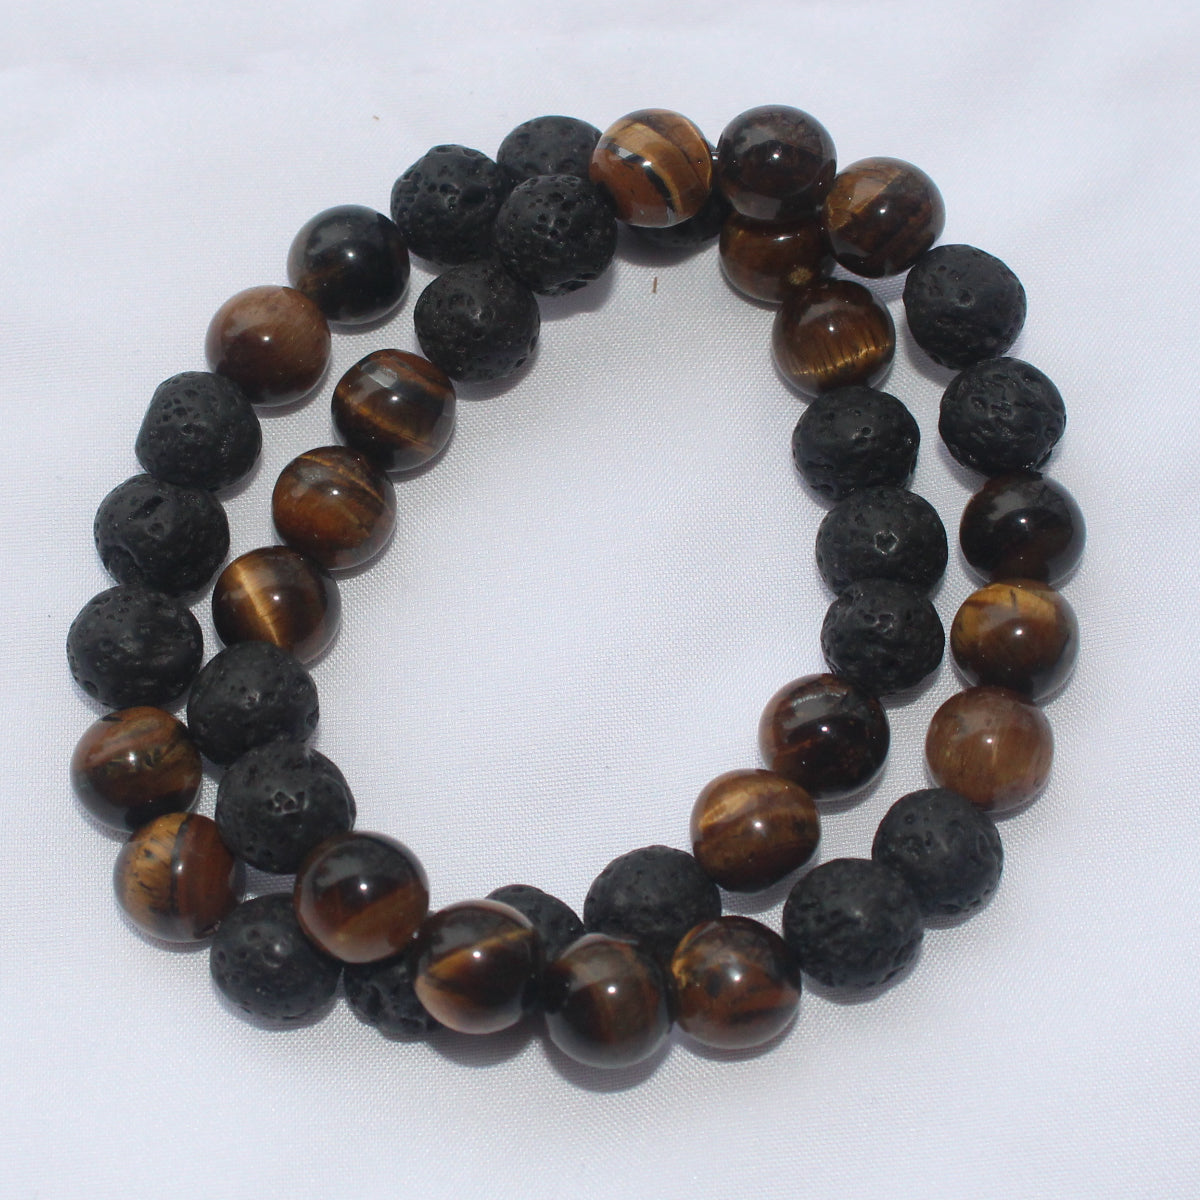 Black Lava and Tiger Eye Beads Bracelet for Men and Women